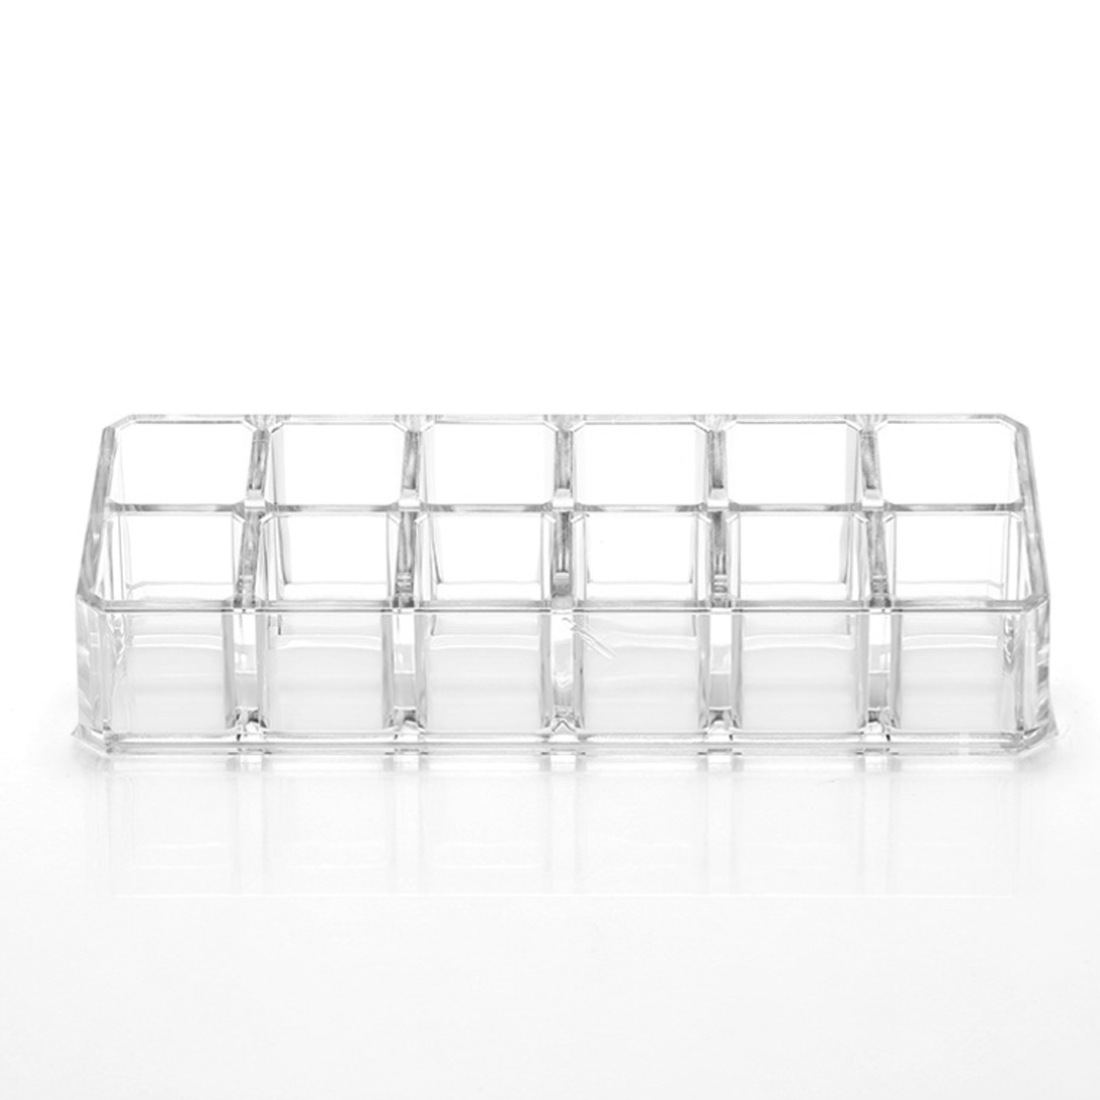 Top 12 Grids Lipstick Holder Display Stand Clear Acrylic Cosmetic Organizer Makeup Storage Box Toiletry Case